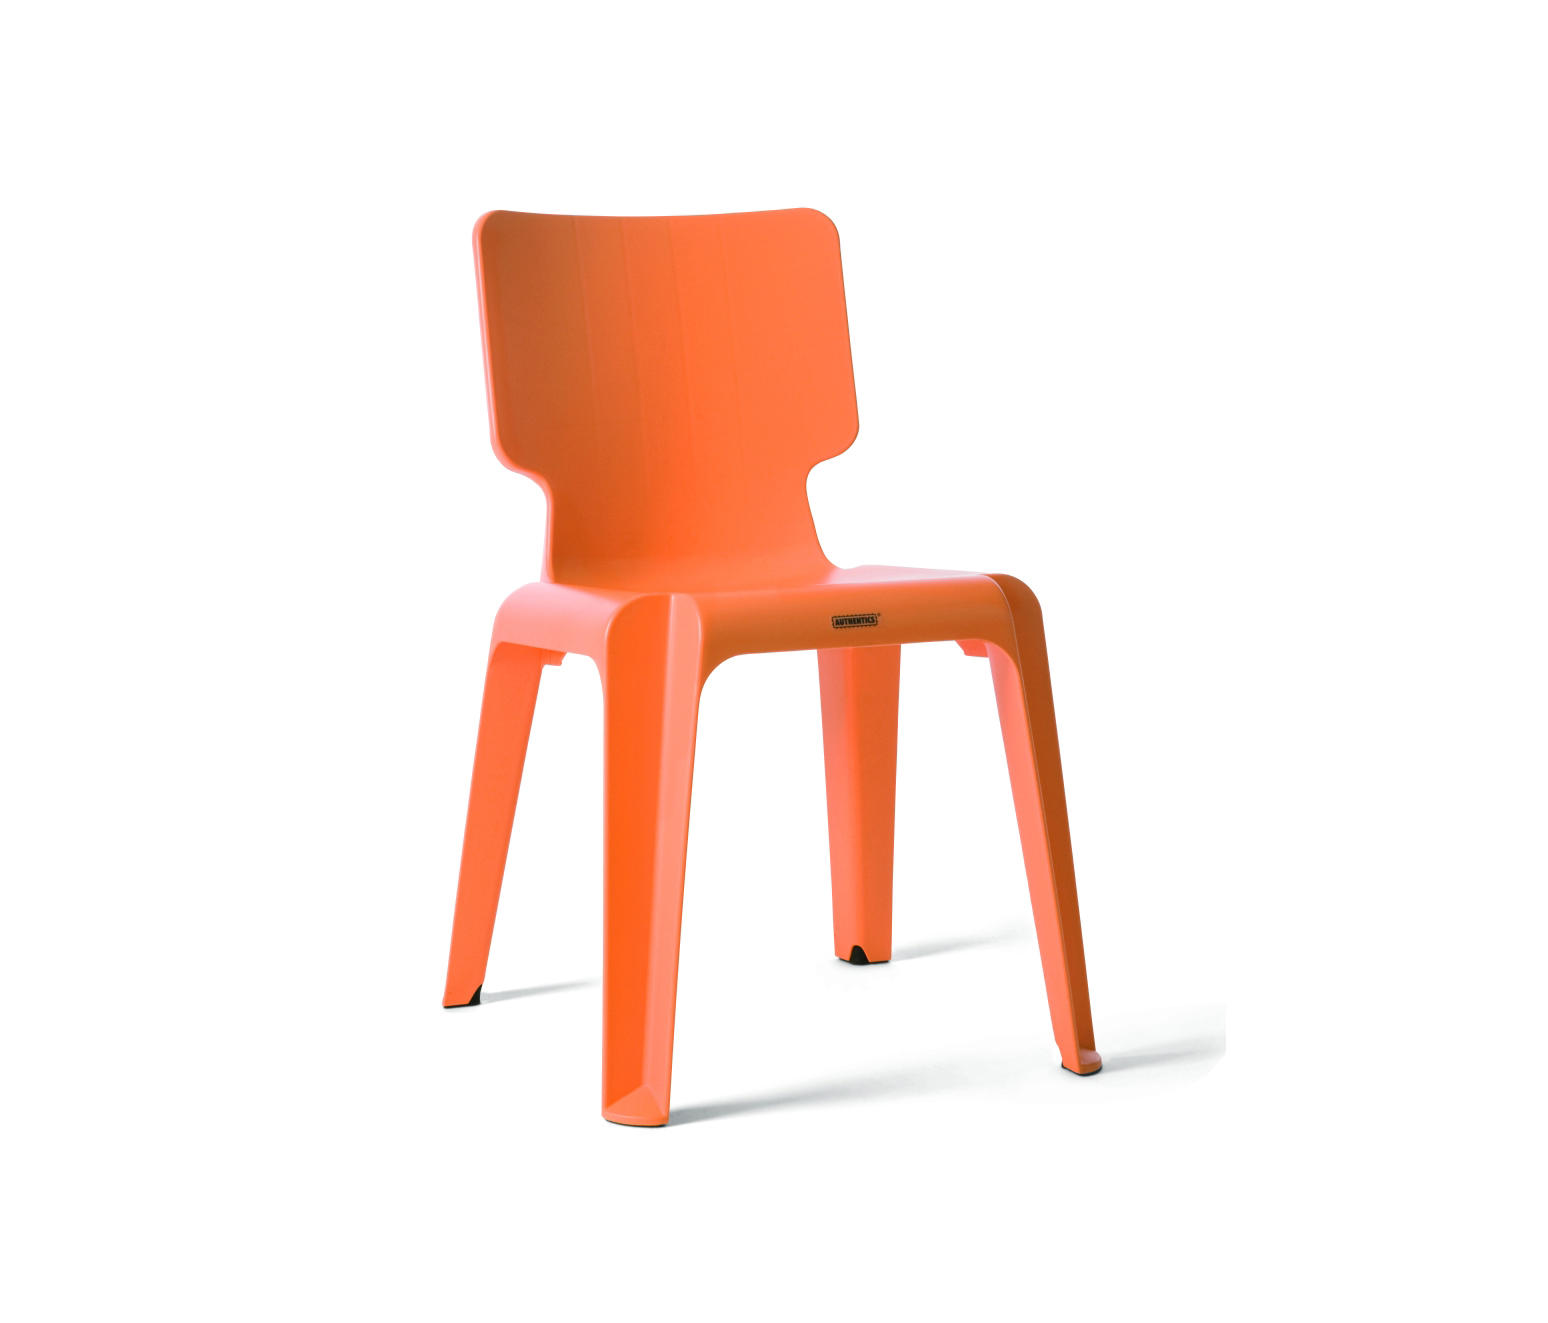 Genial WAIT Plastic Chair By Authentics